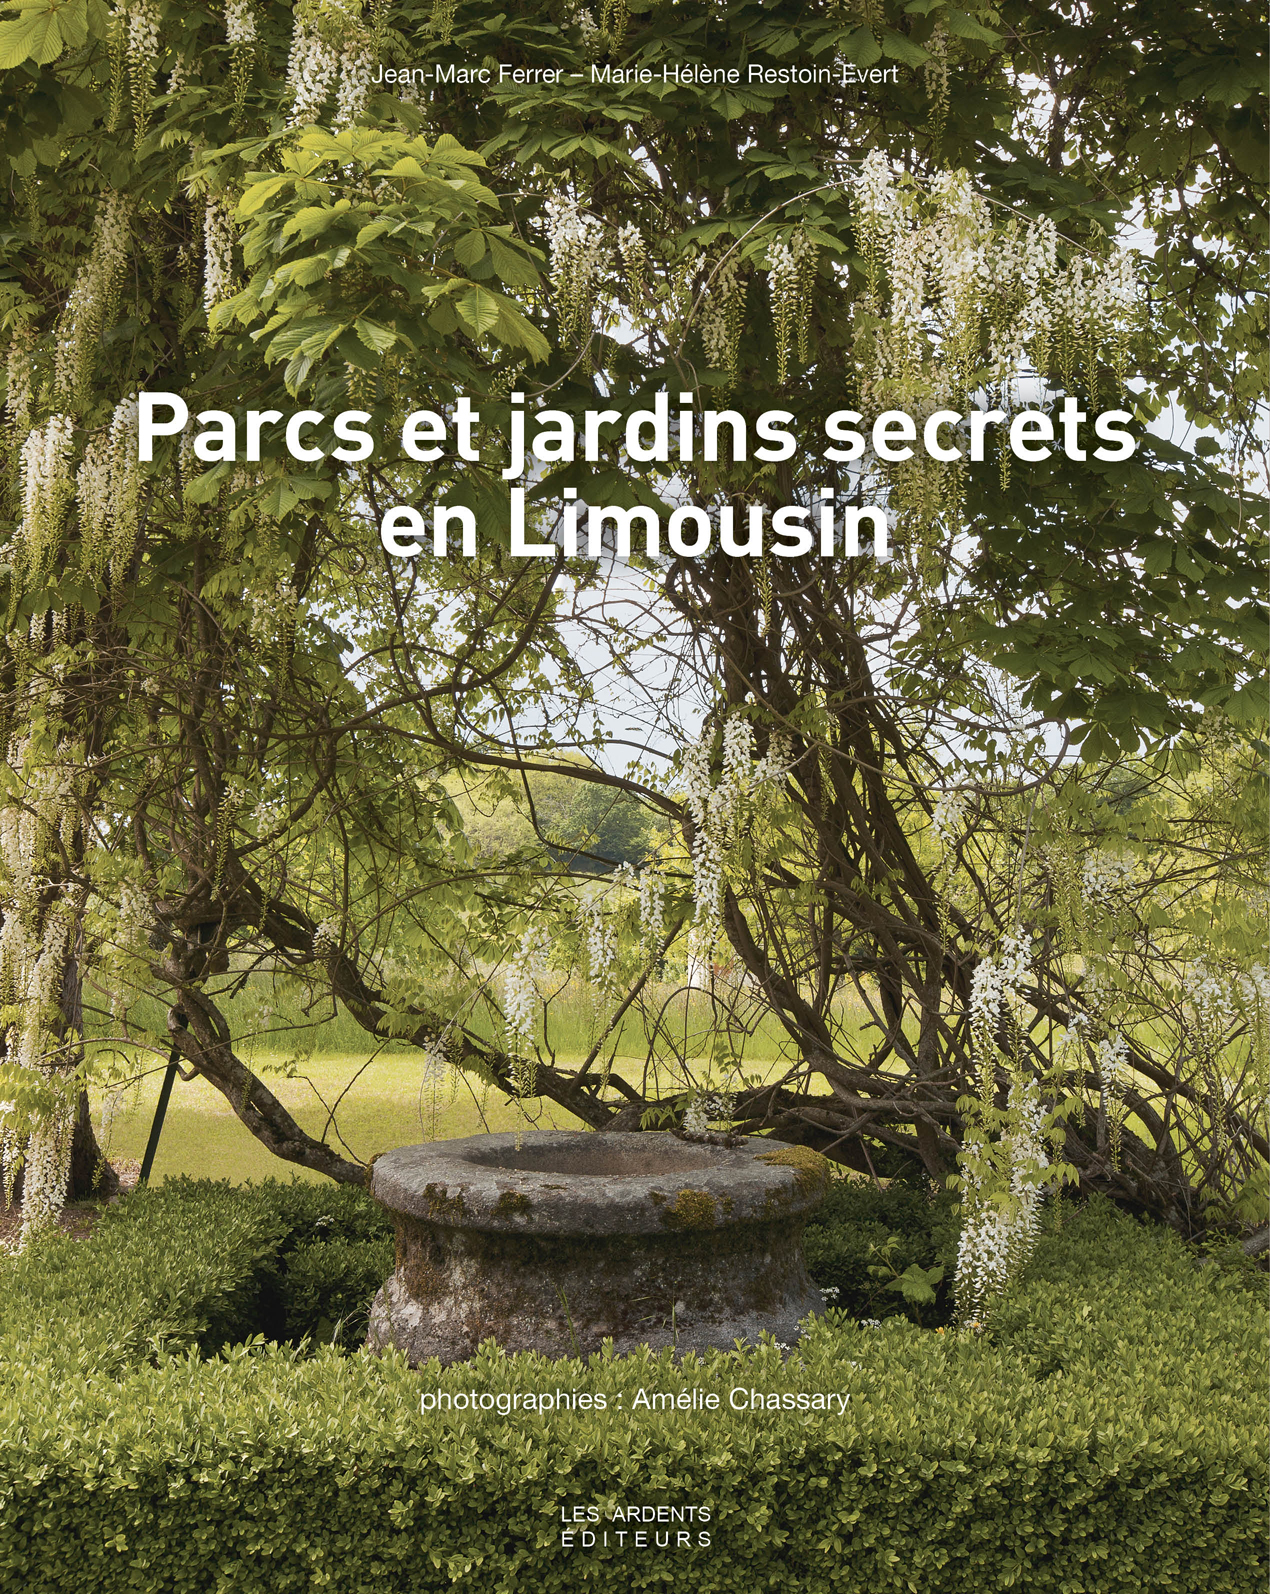 Les ardents editeurs parcs et jardins secrets en limousin for Jardin secret des hansen